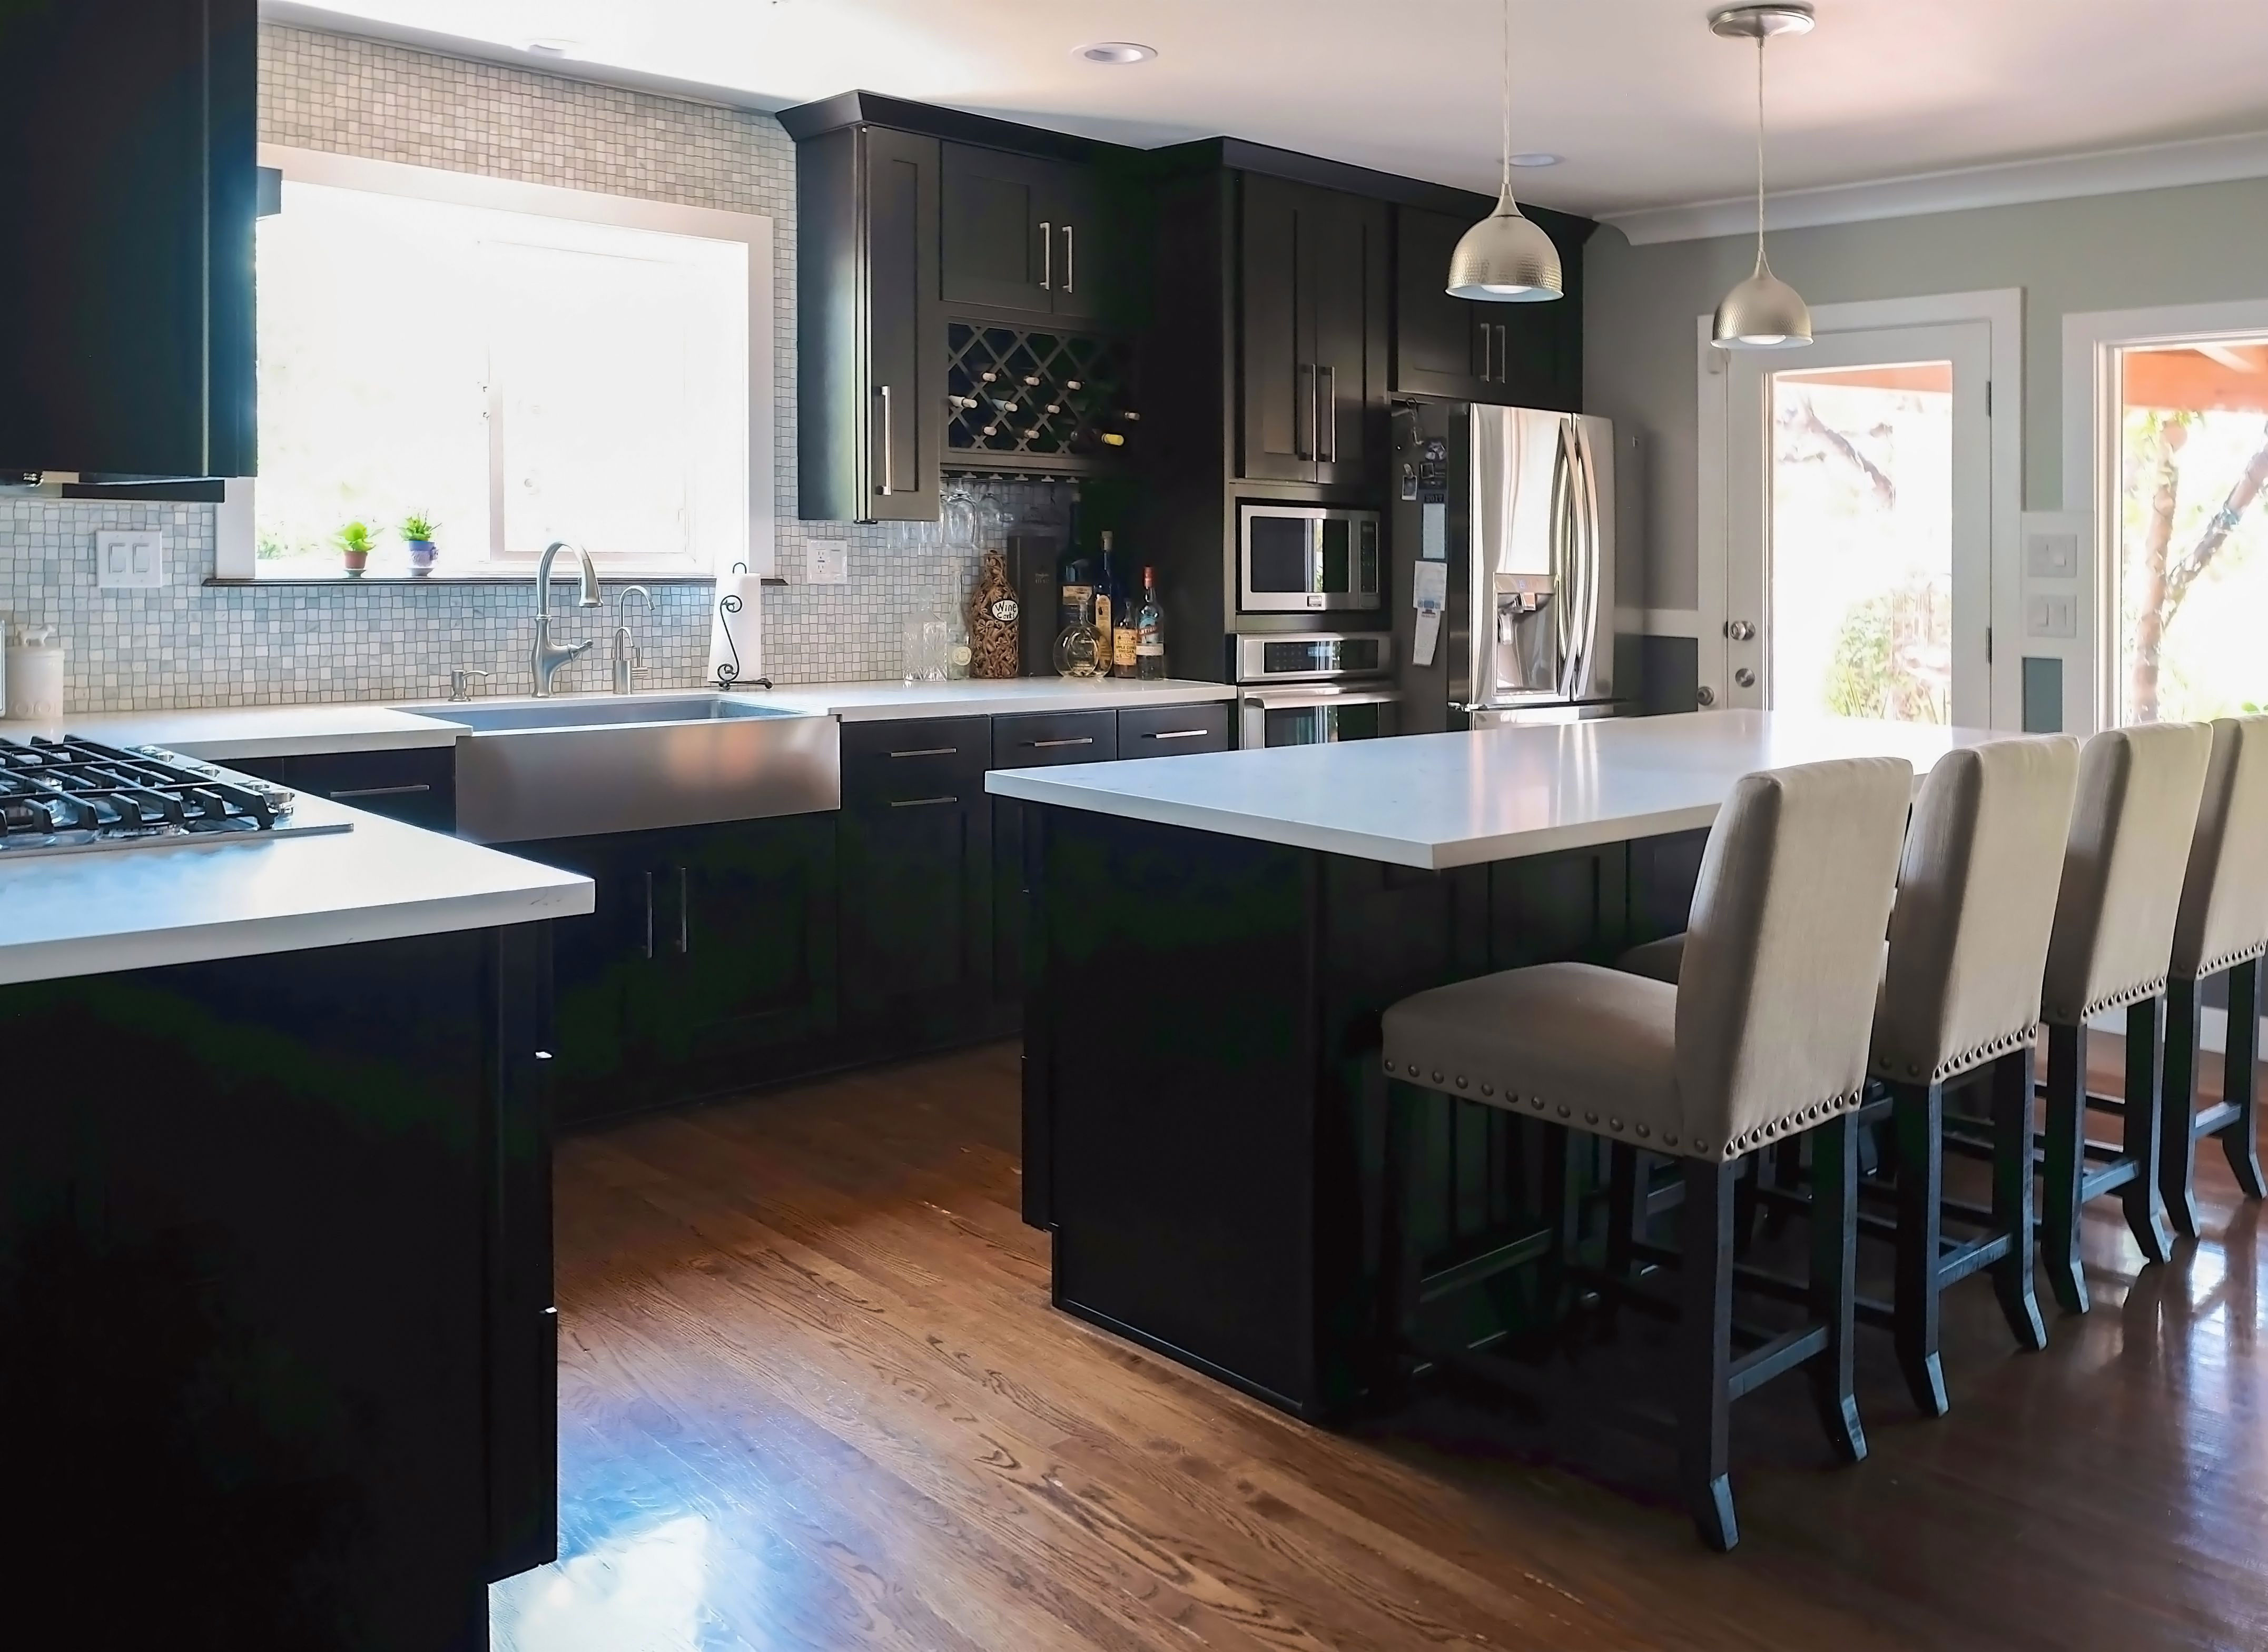 ss hardwood floors of wooden cabinets for living room awesome wooden floor living room pertaining to wooden cabinets for living room best of espresso shaker kitchen cabinets inspirational modern living room of